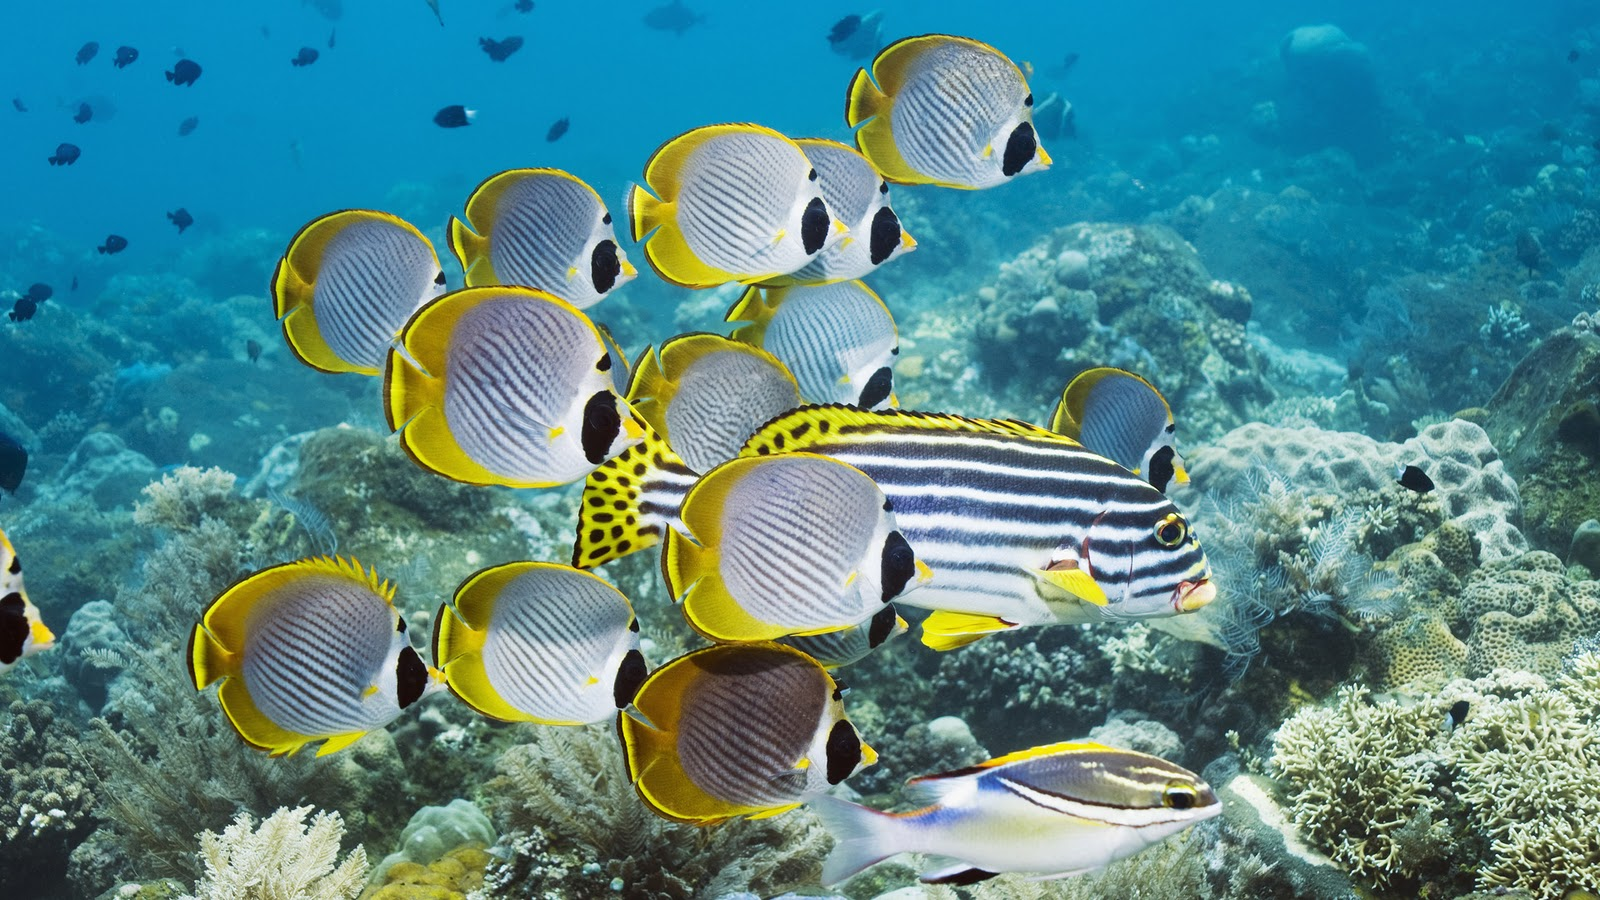 sea animals cute fish creatures wild wallpapers birds water deep creature undersea wildlife bali 1080